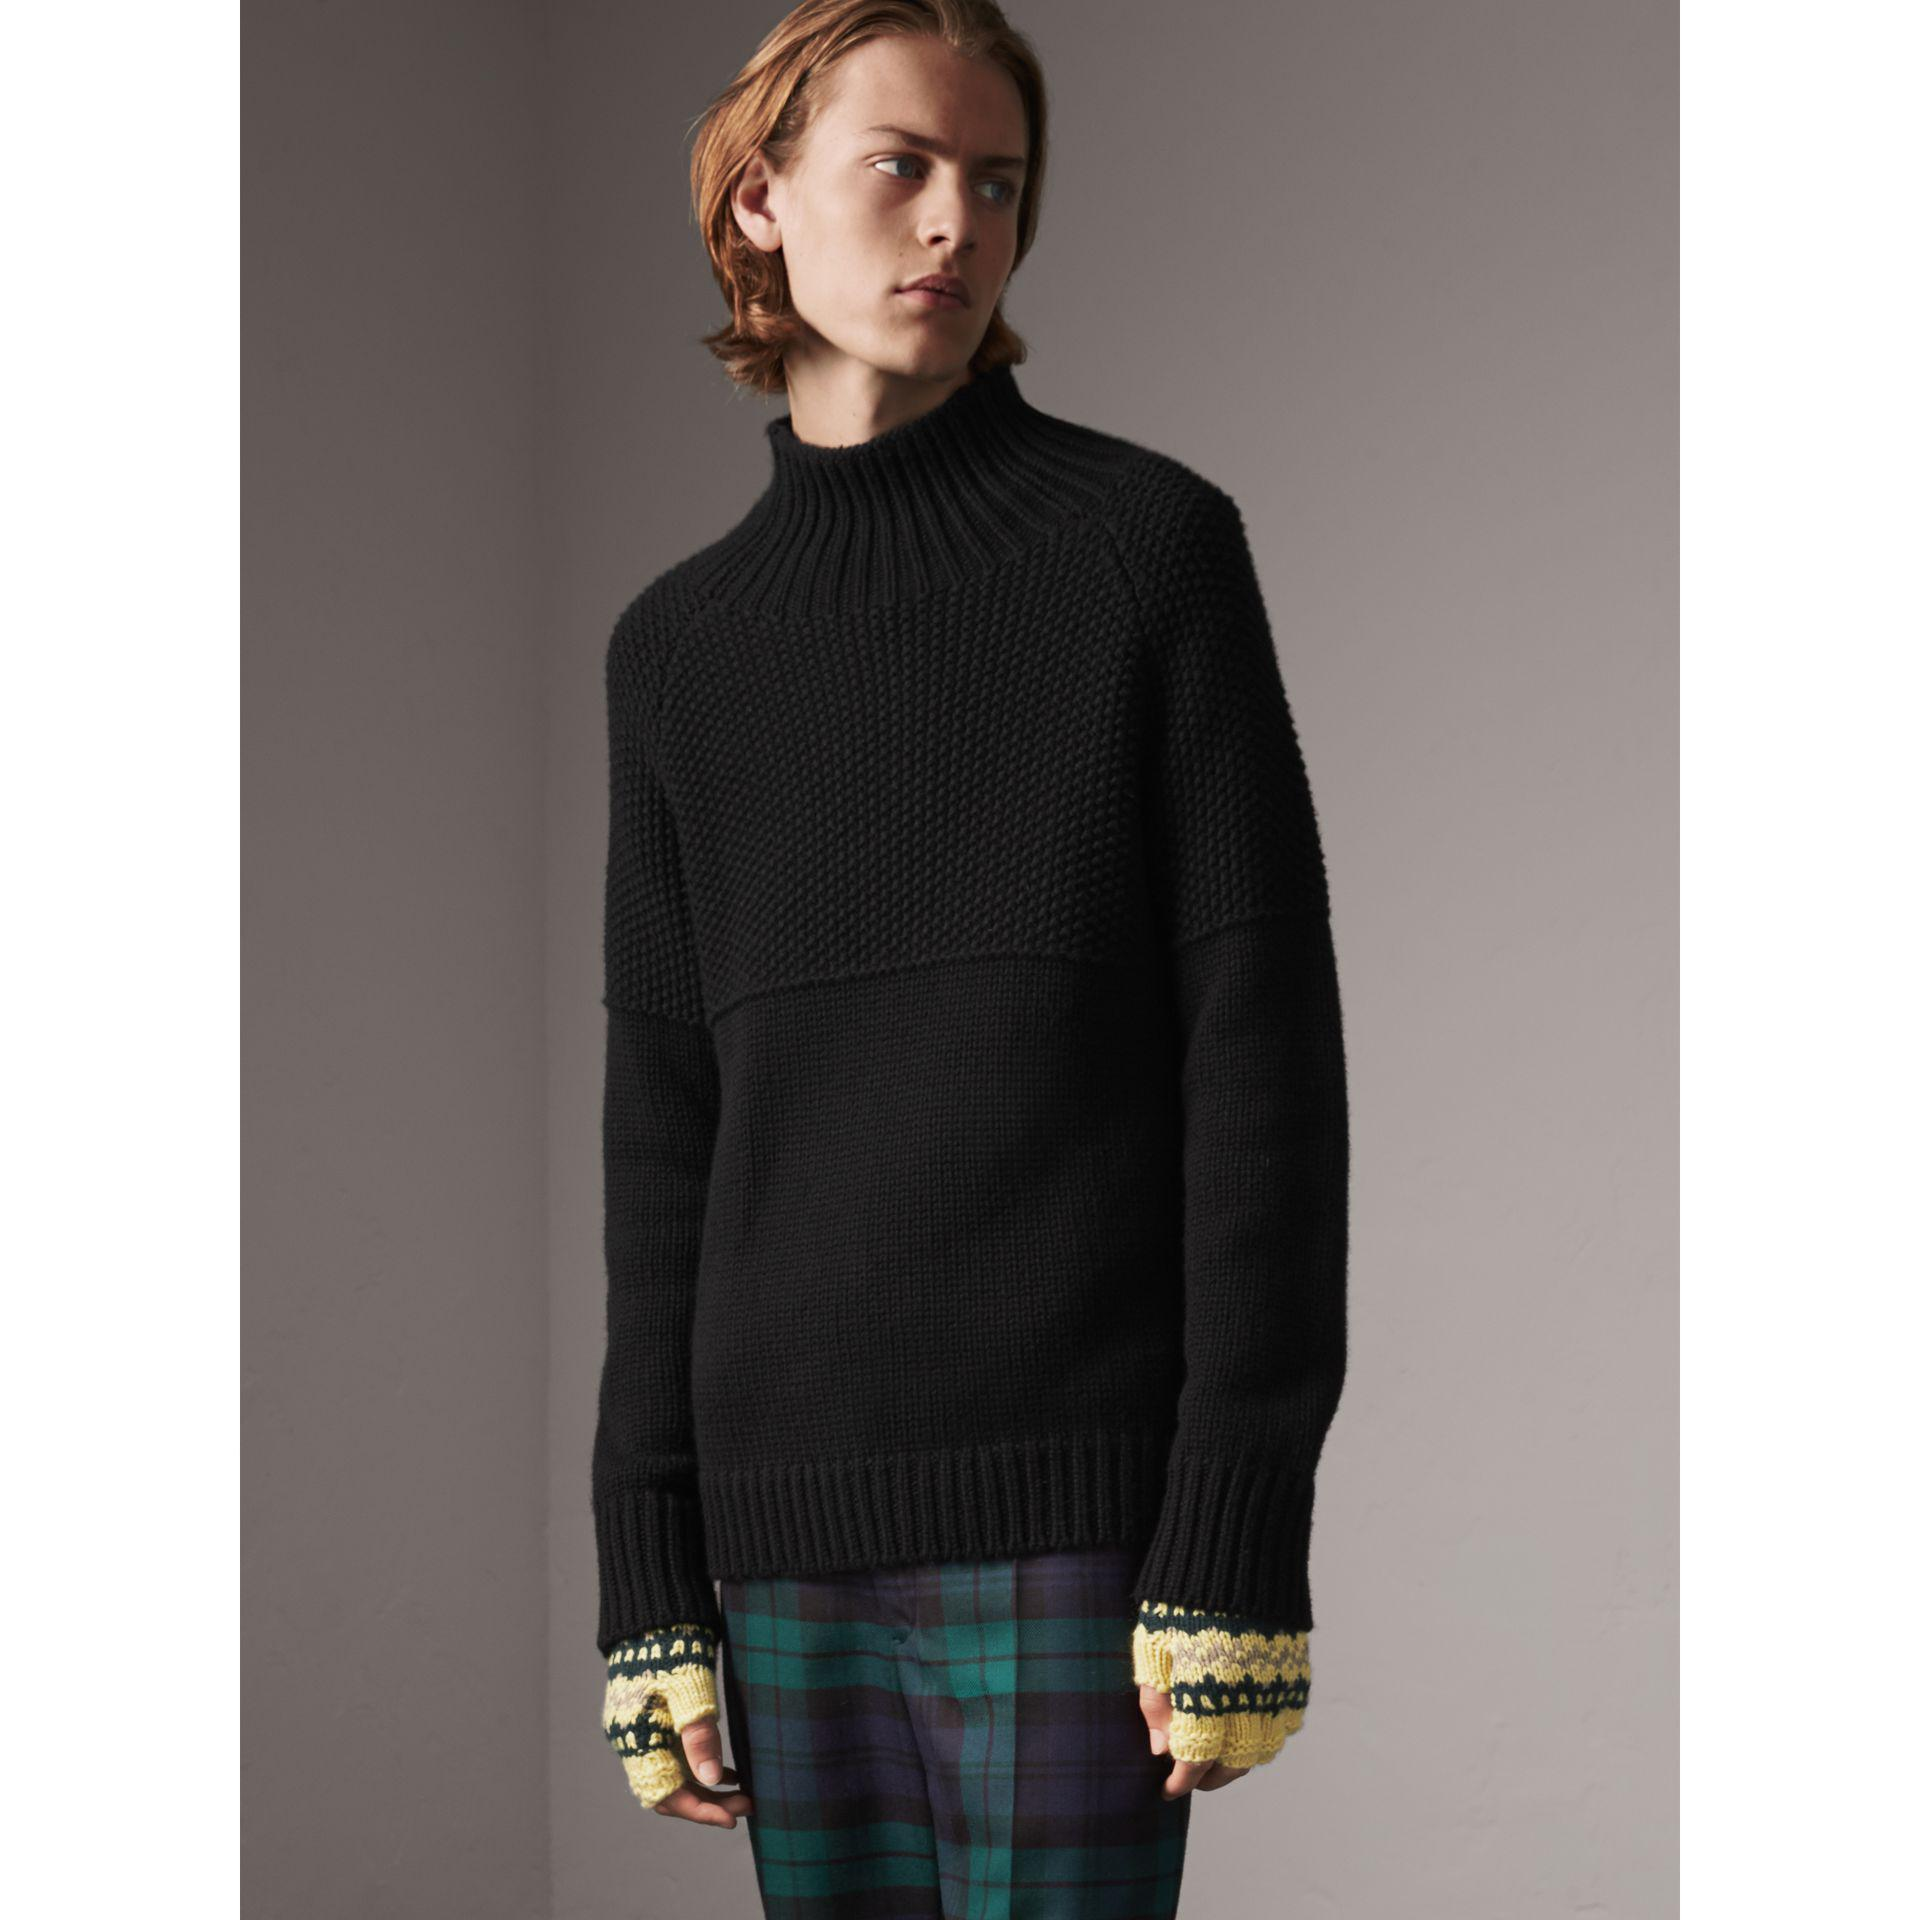 Lyst - Burberry Cashmere Fisherman Sweater in Black for Men